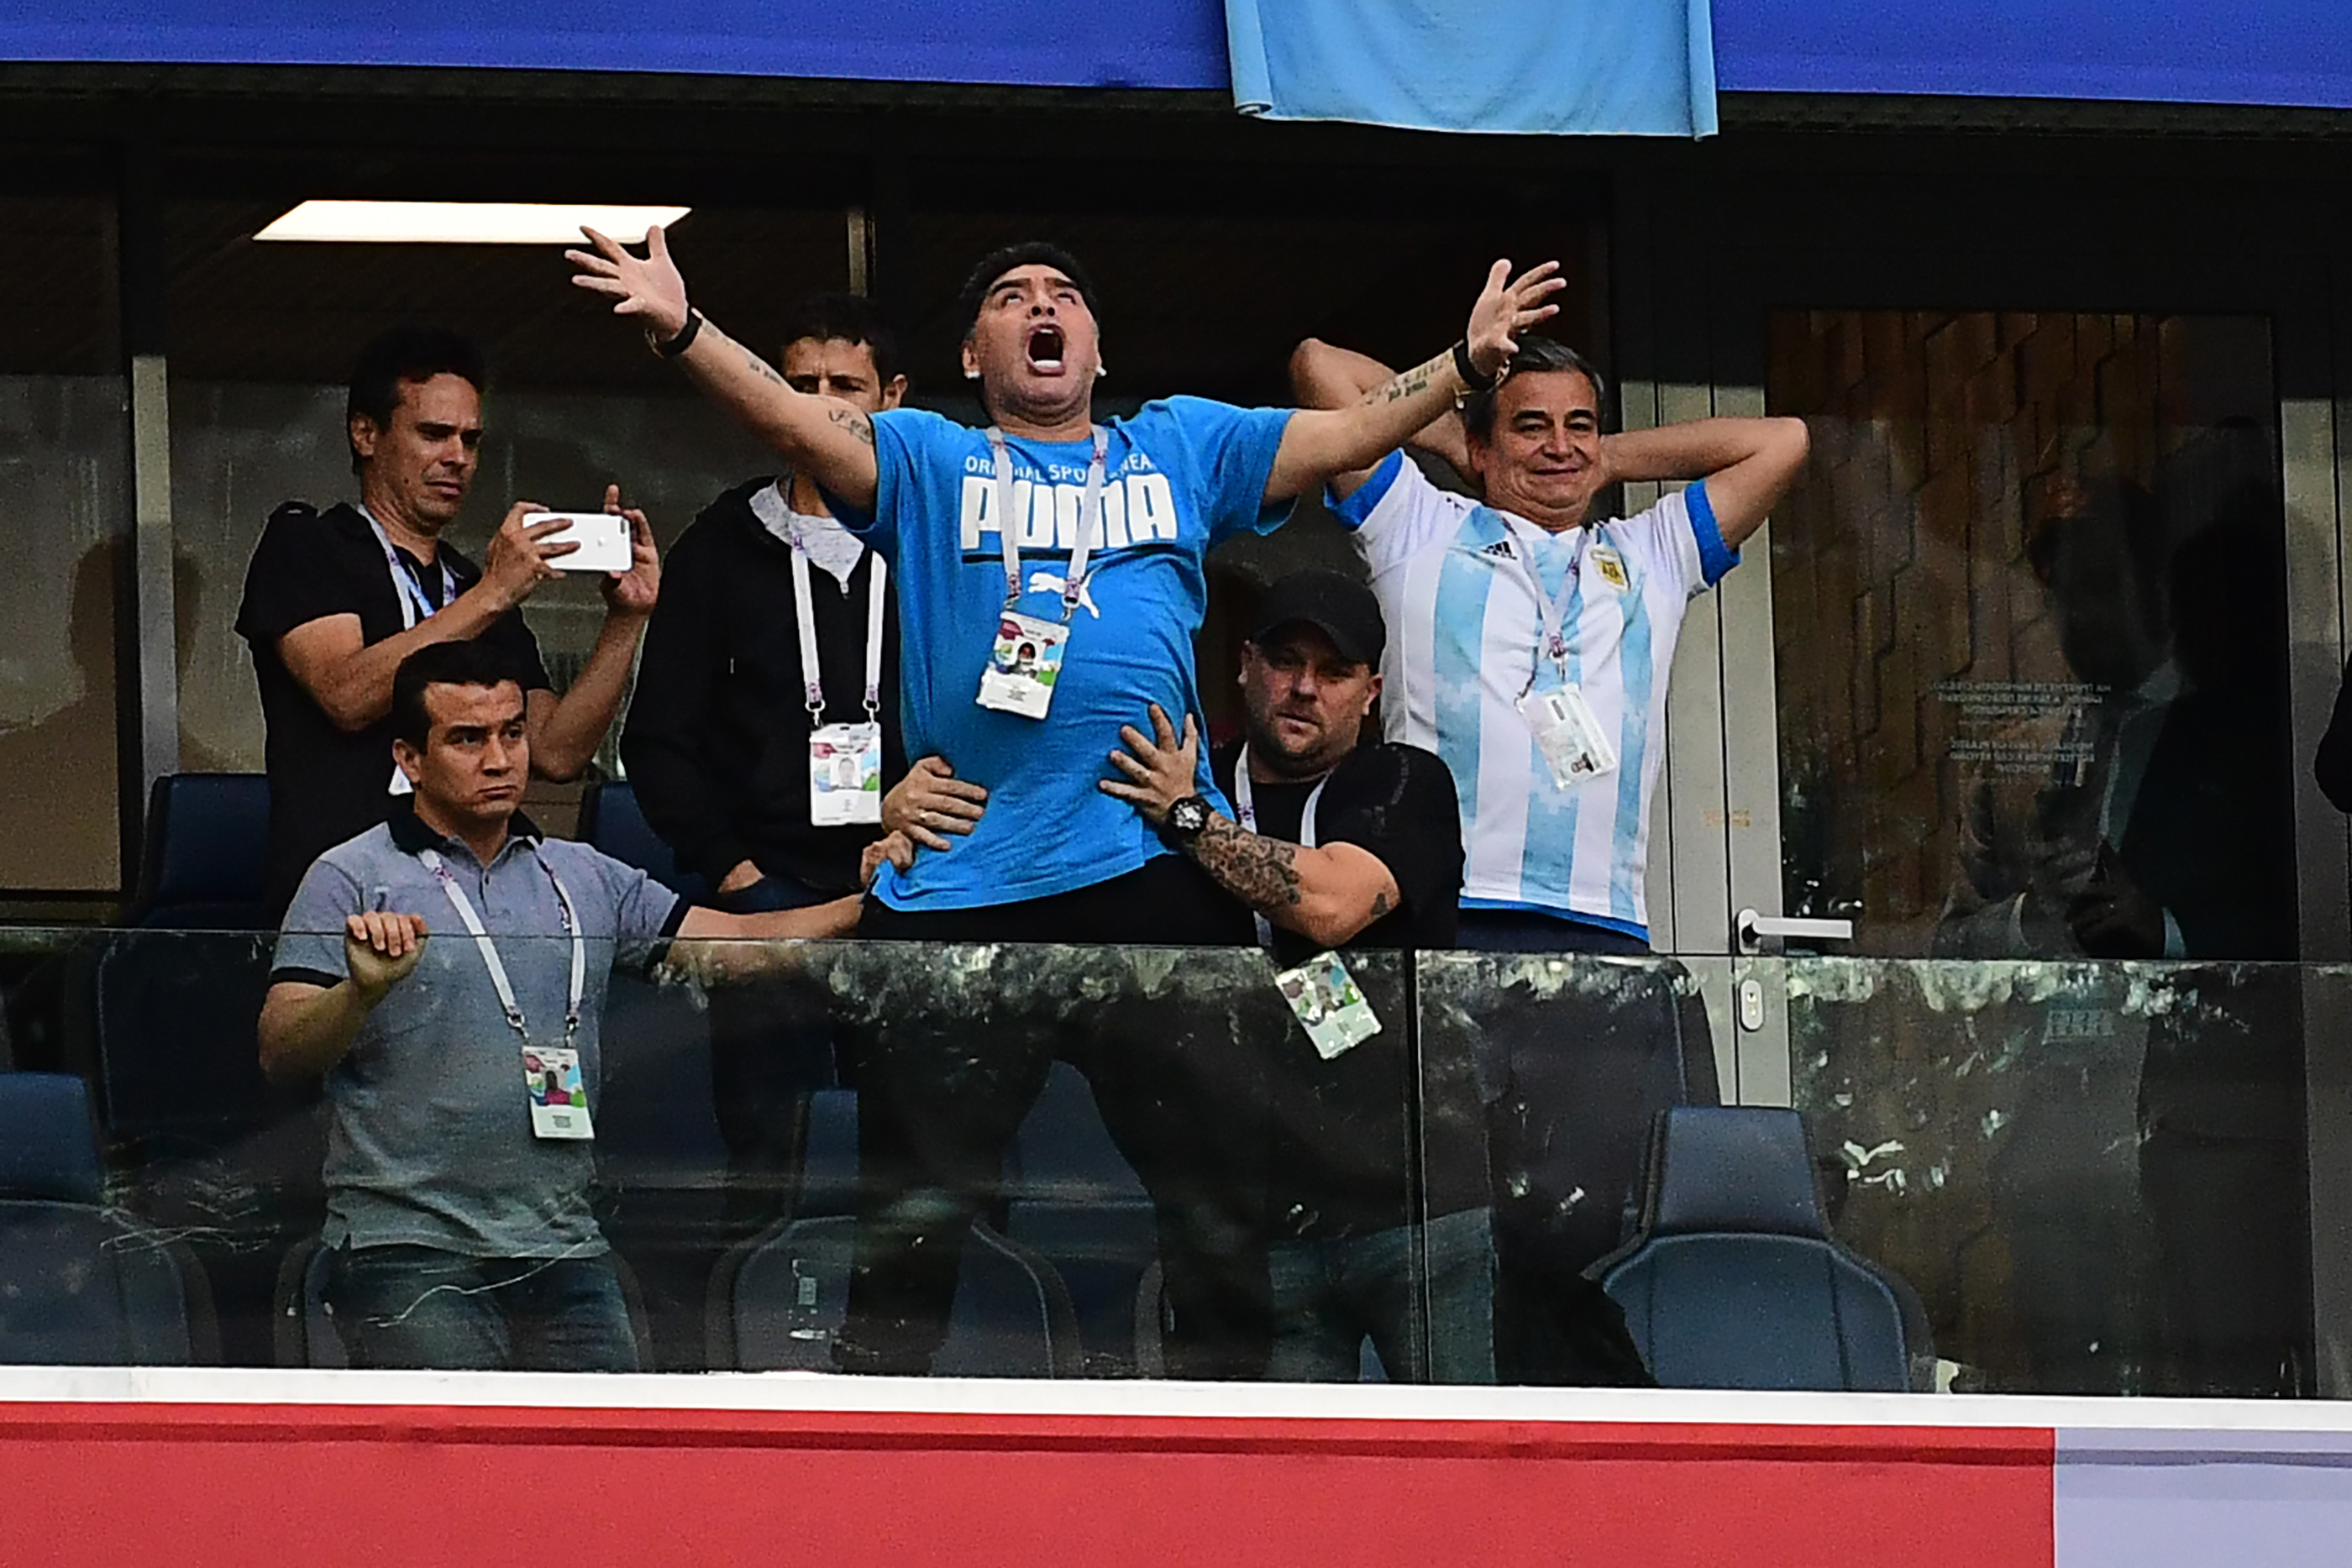 This Icon's Reactions Watching the World Cup Are Pure Drama | Time